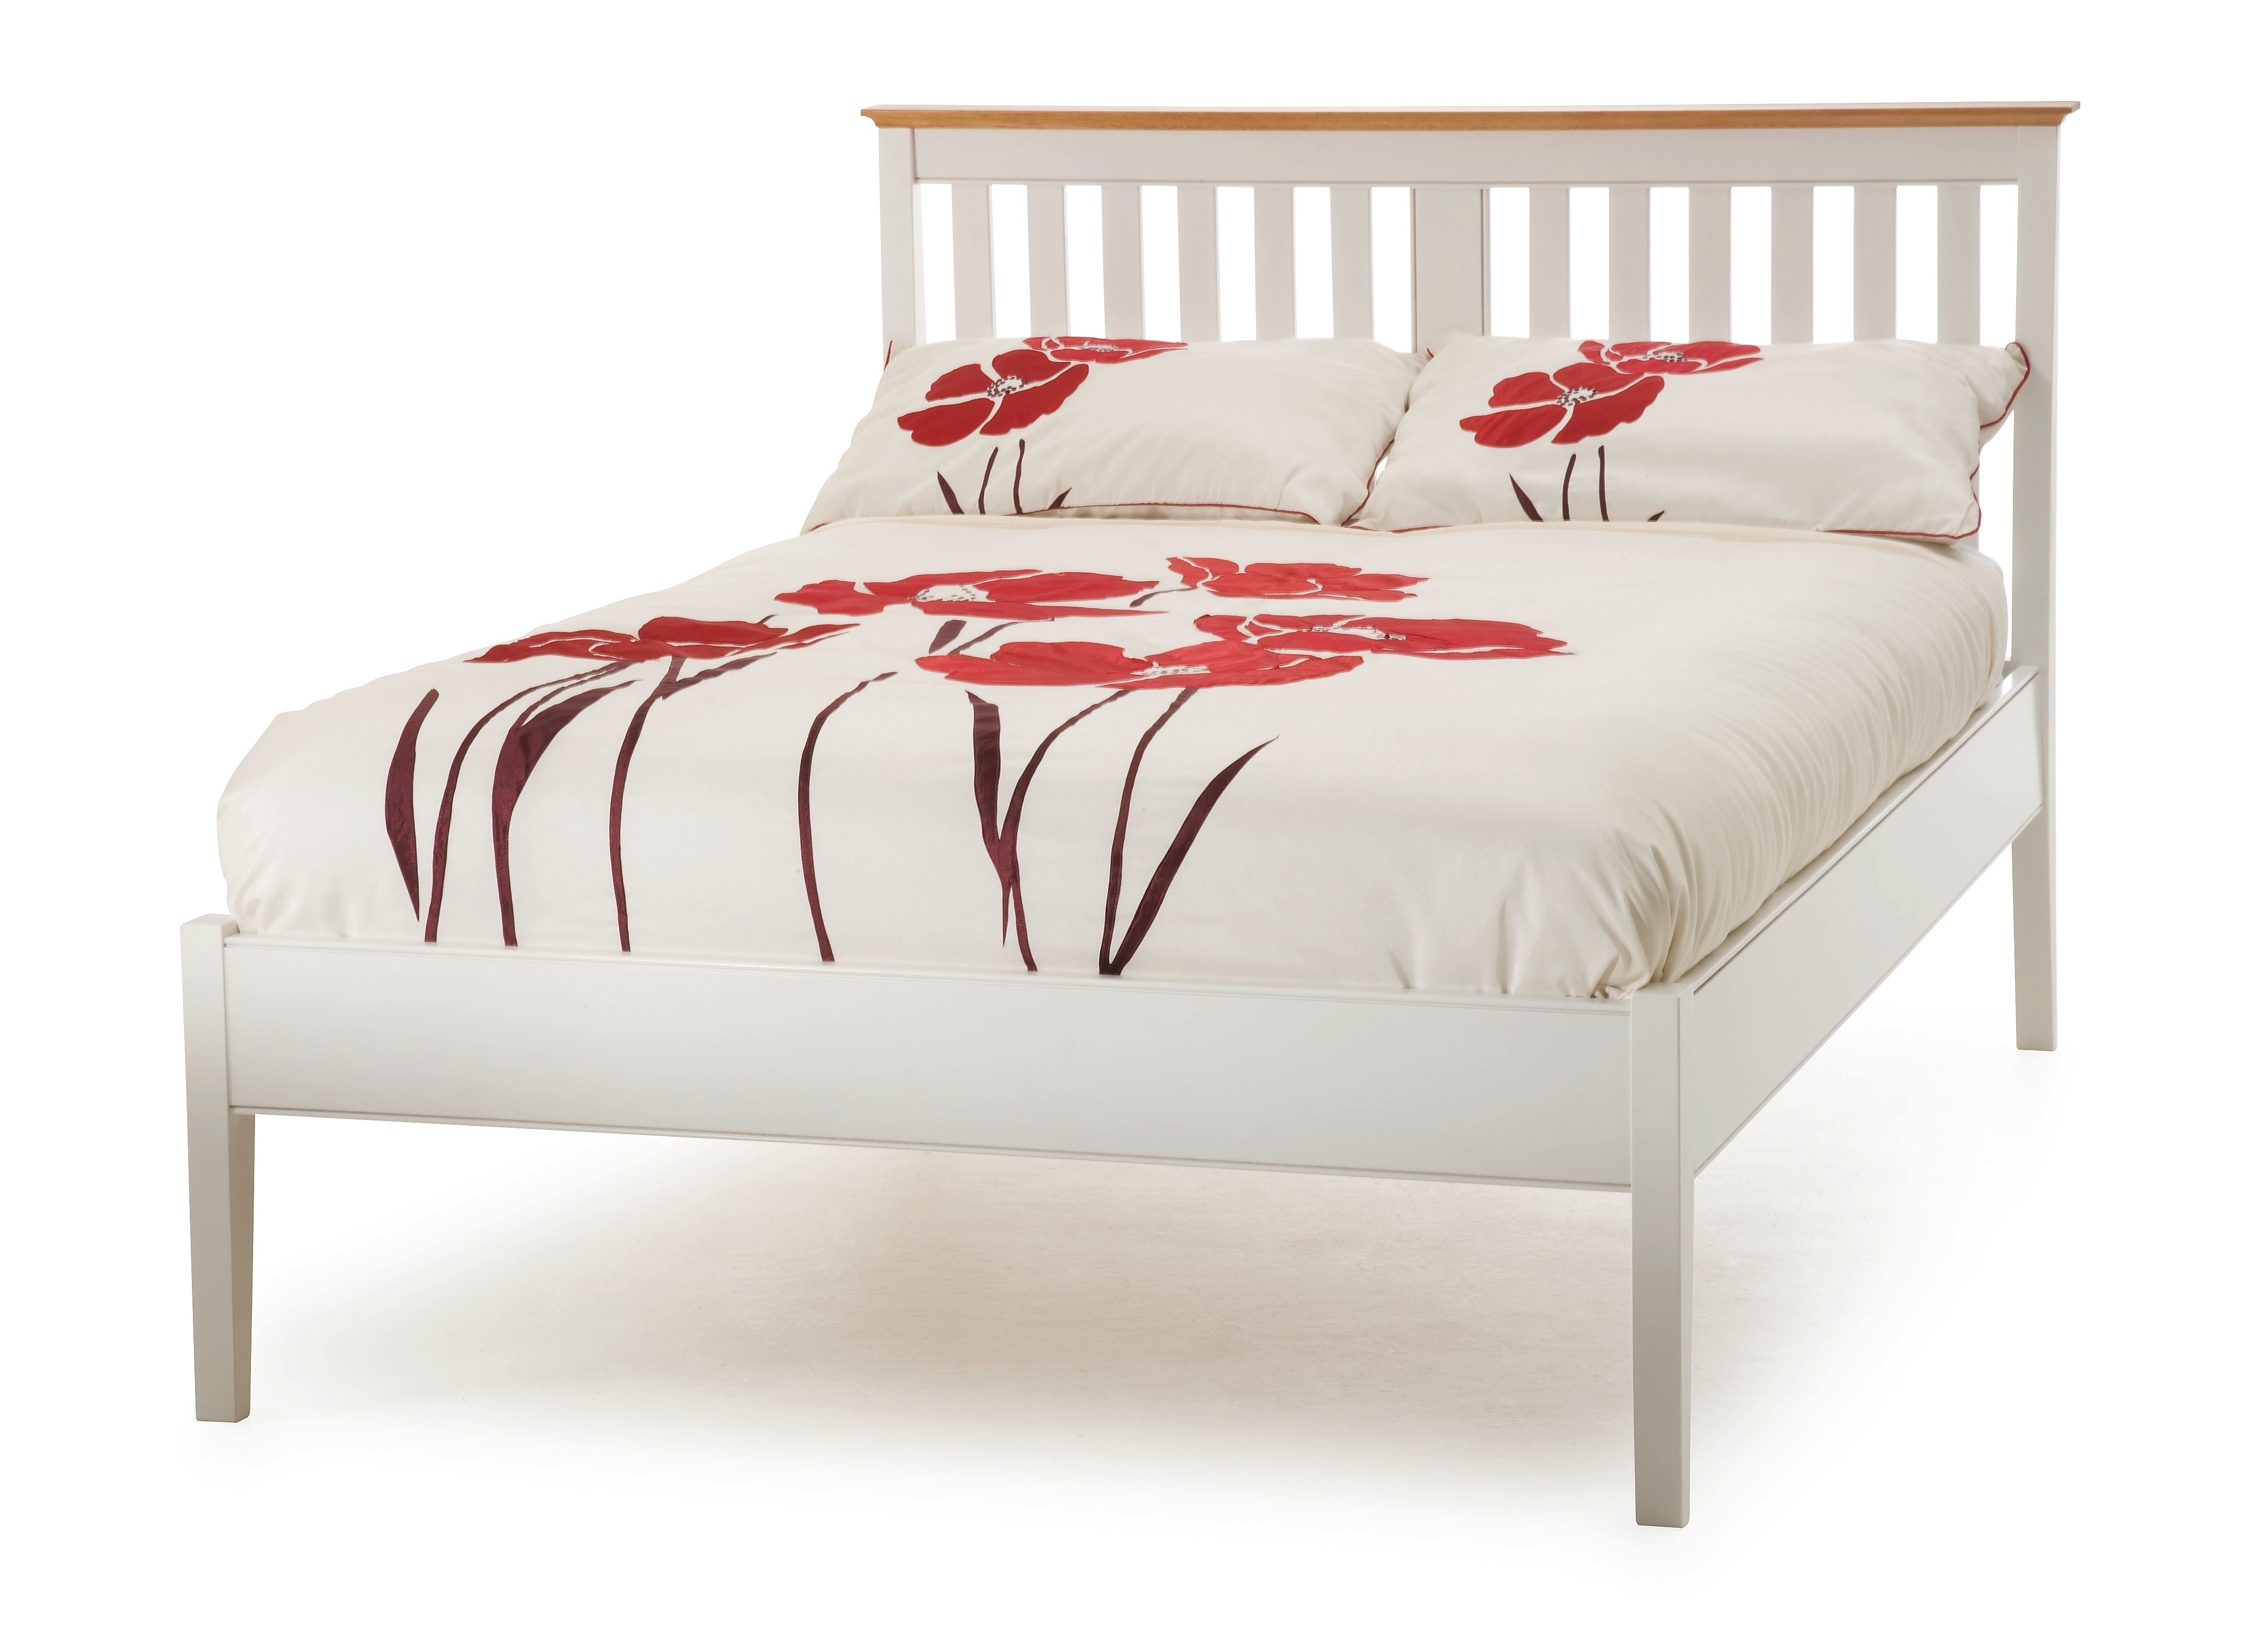 Small Double Bed Frame With Headboard